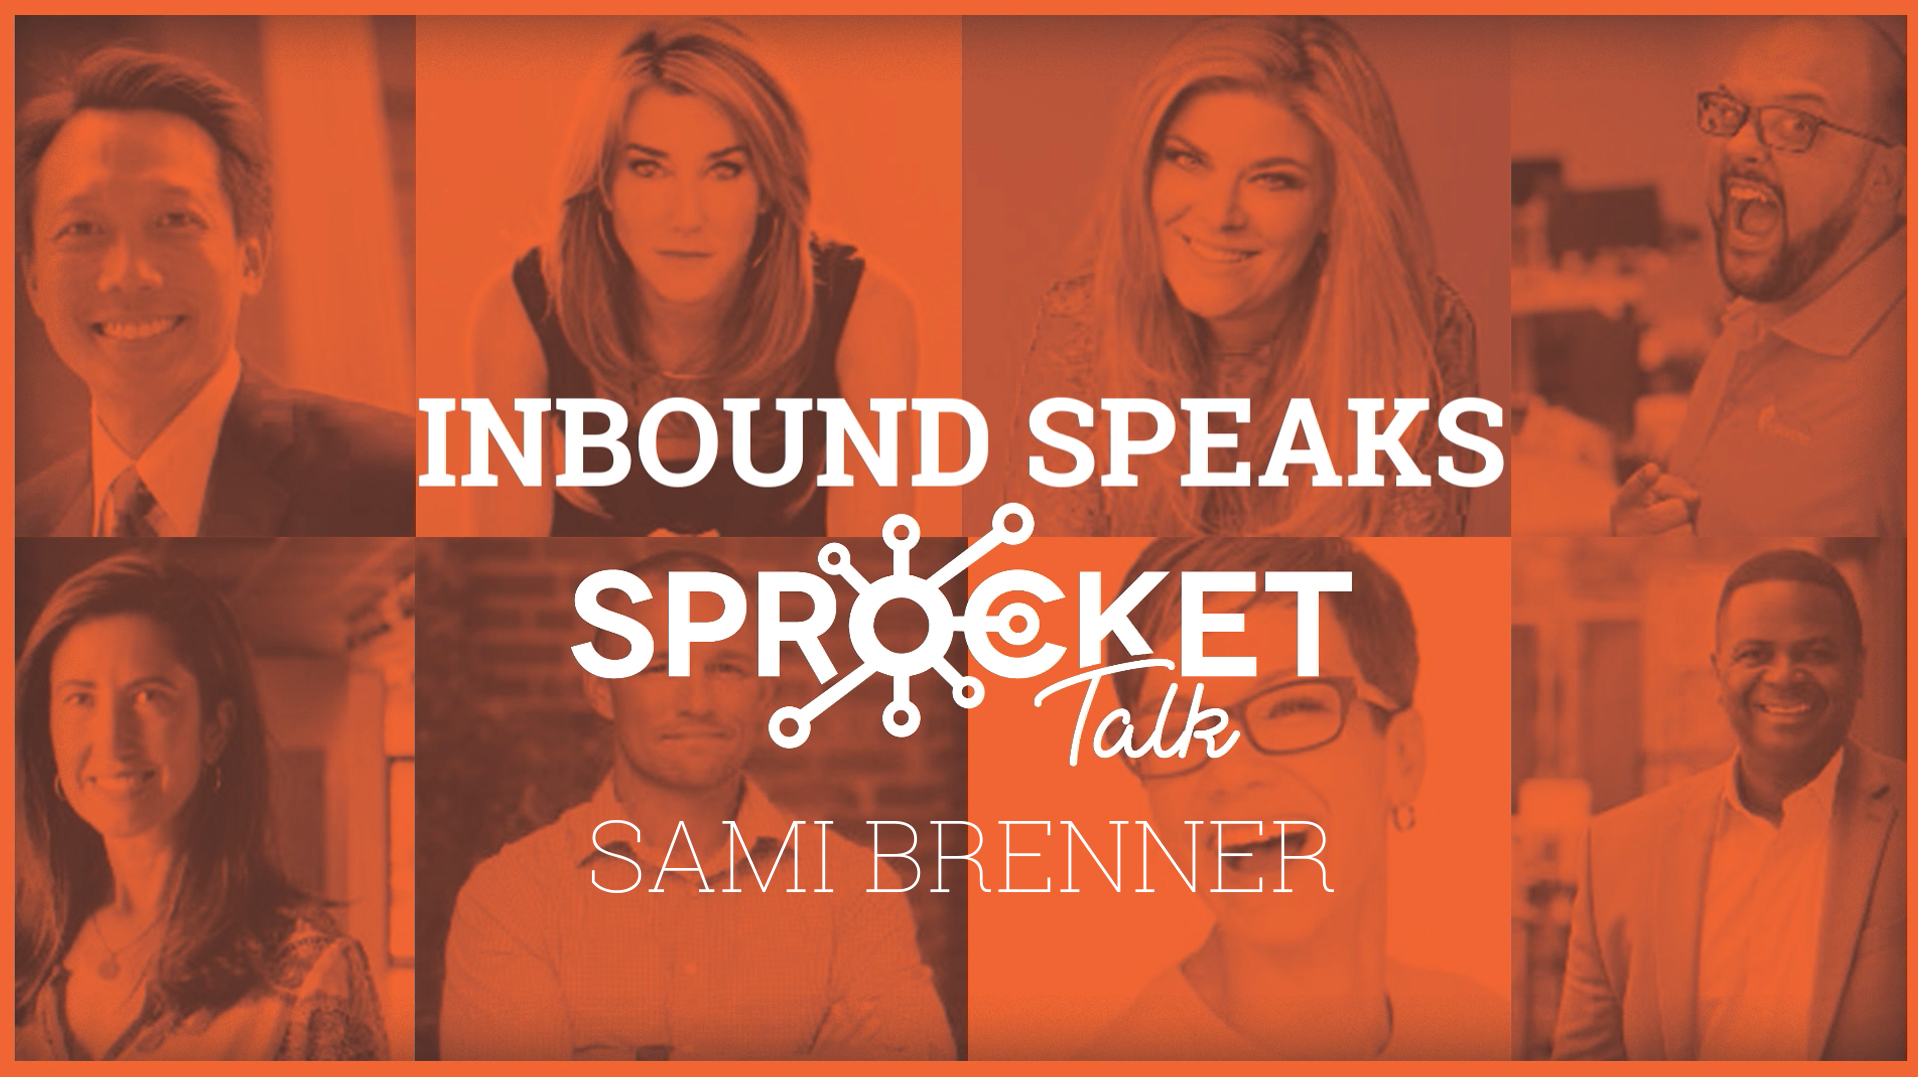 Sami Brenner How to Align Your Sales and Marketing Teams to Conquer Content Strategy + Your CRM! #Inbound19